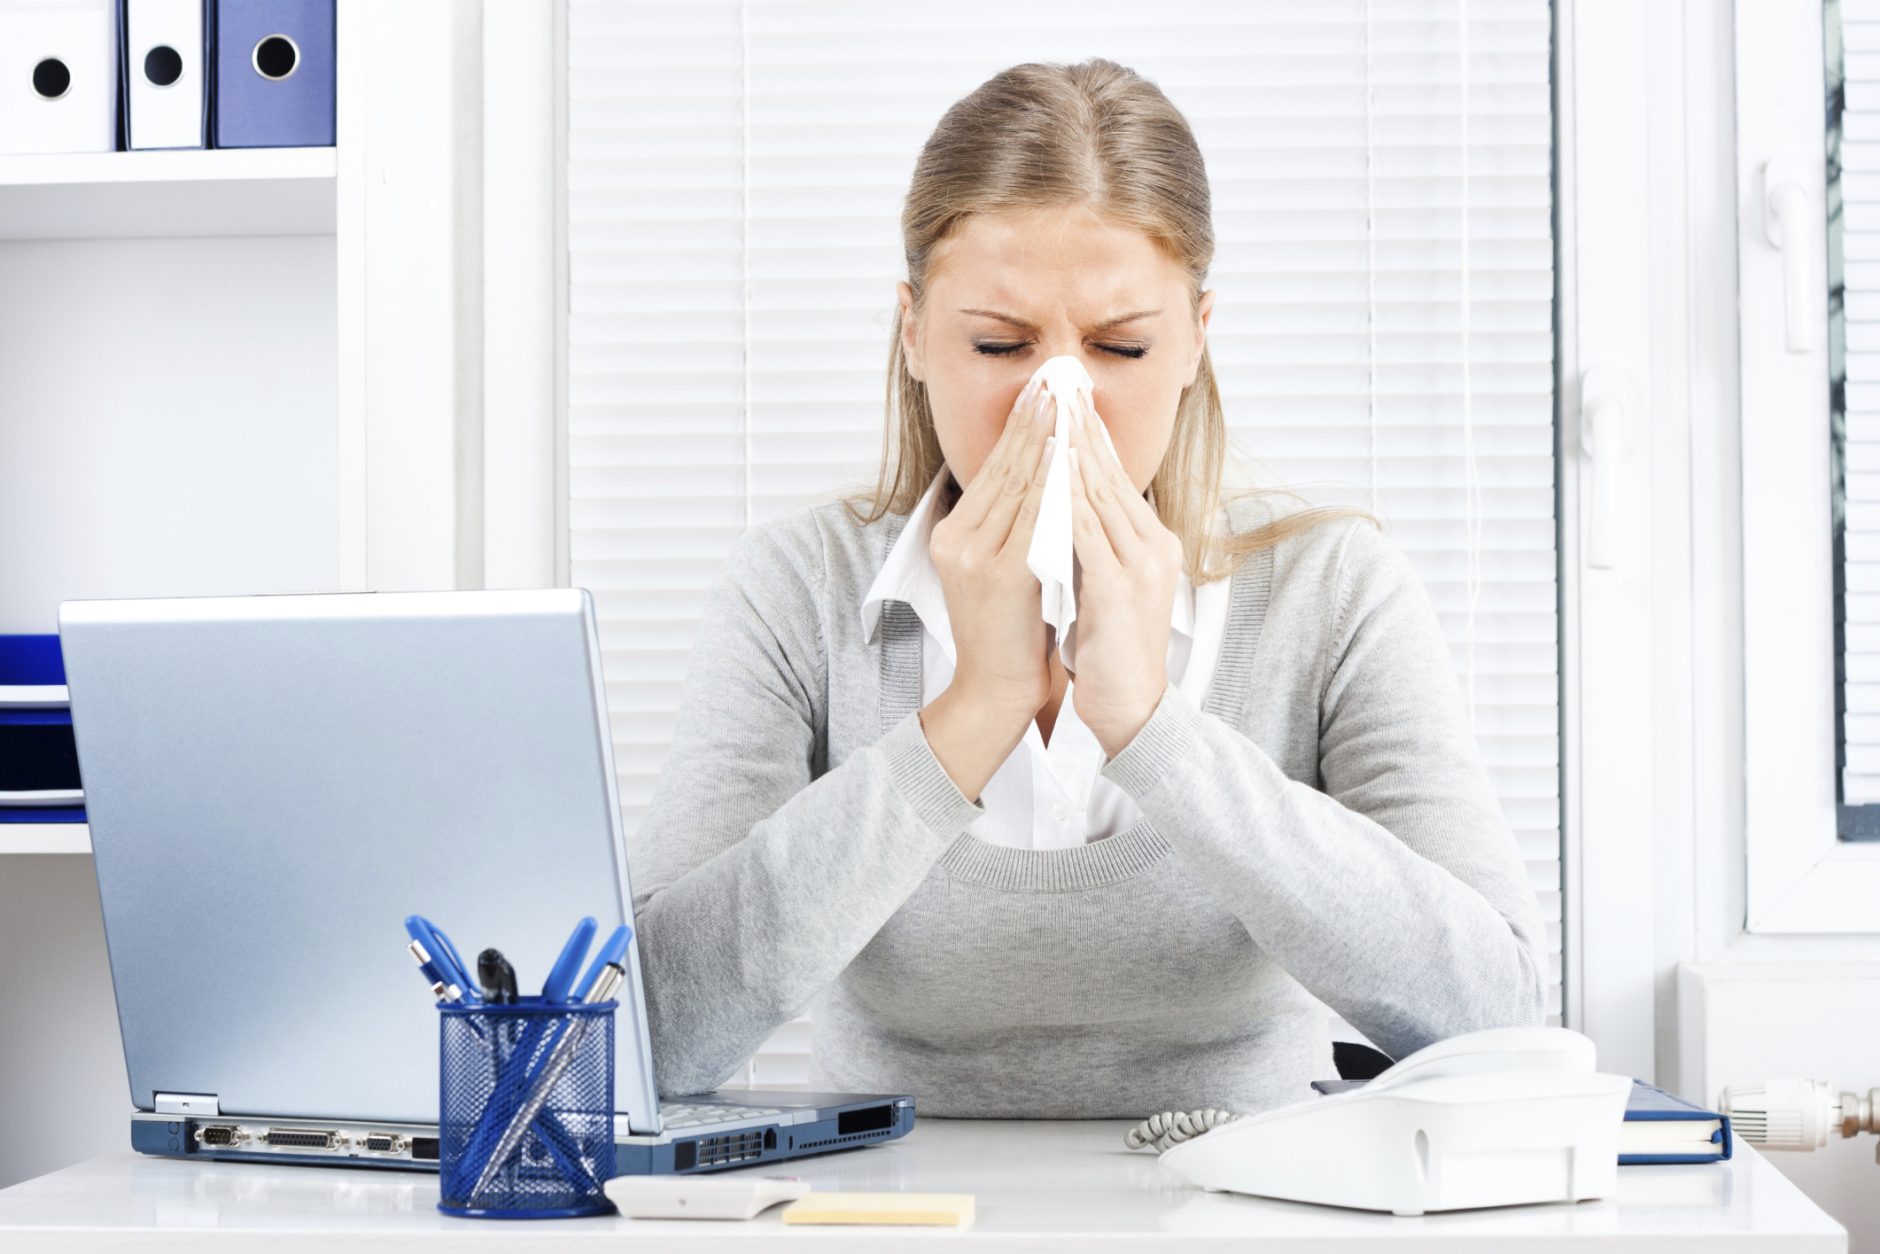 Cold severity will determine when you should work out